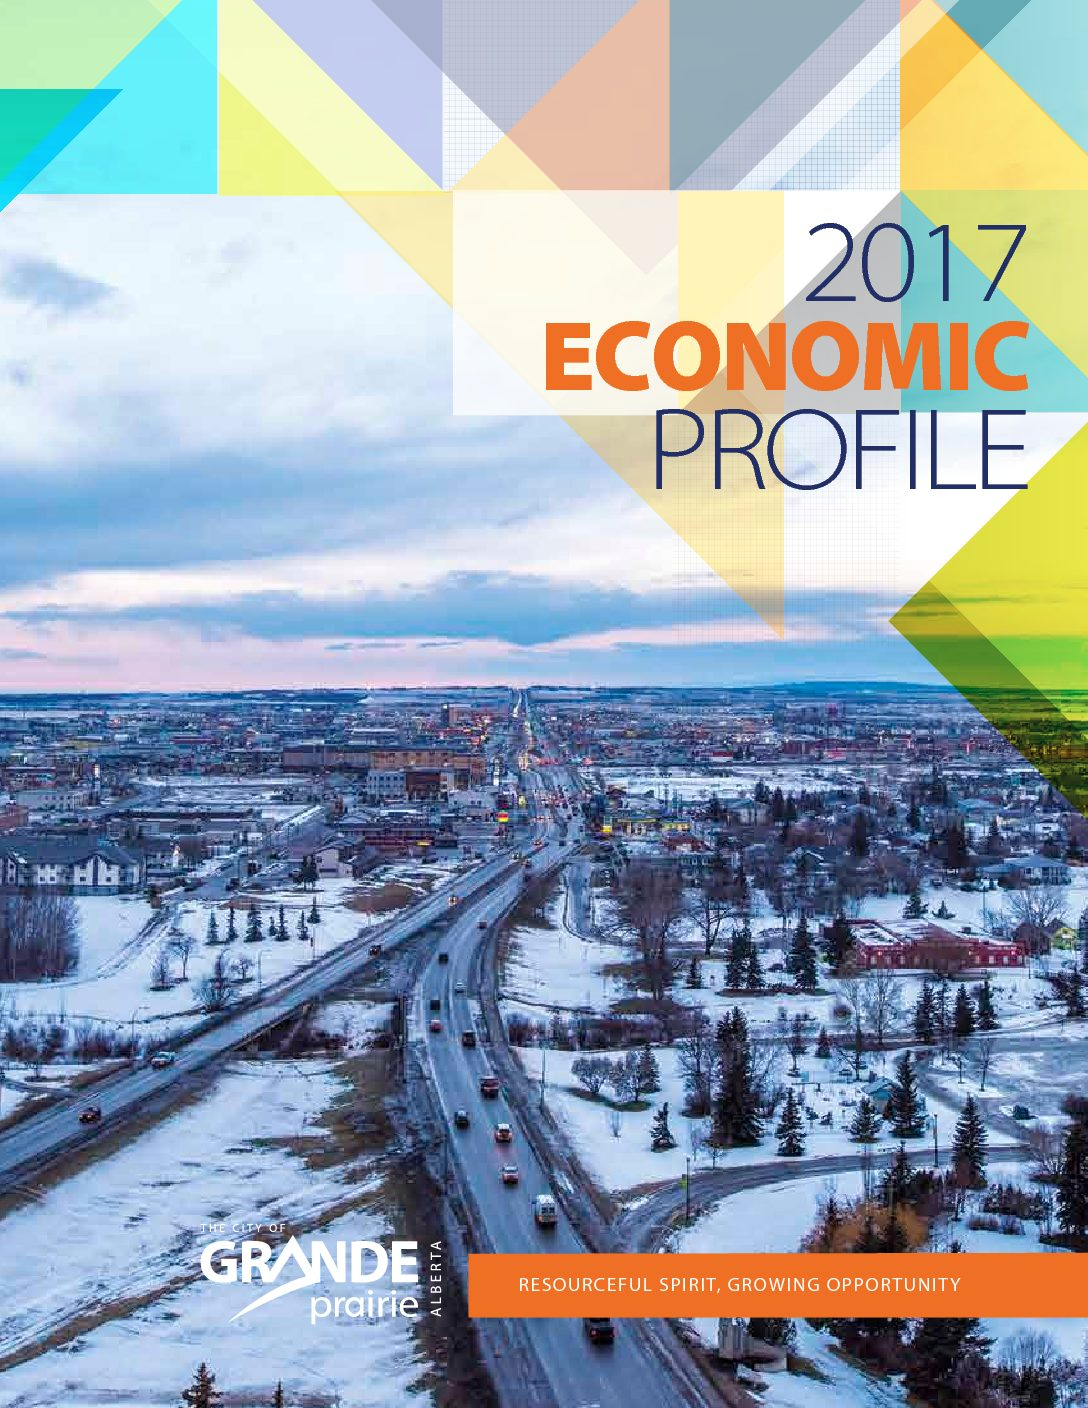 City of Grande Prairie – 2017 Economic Profile